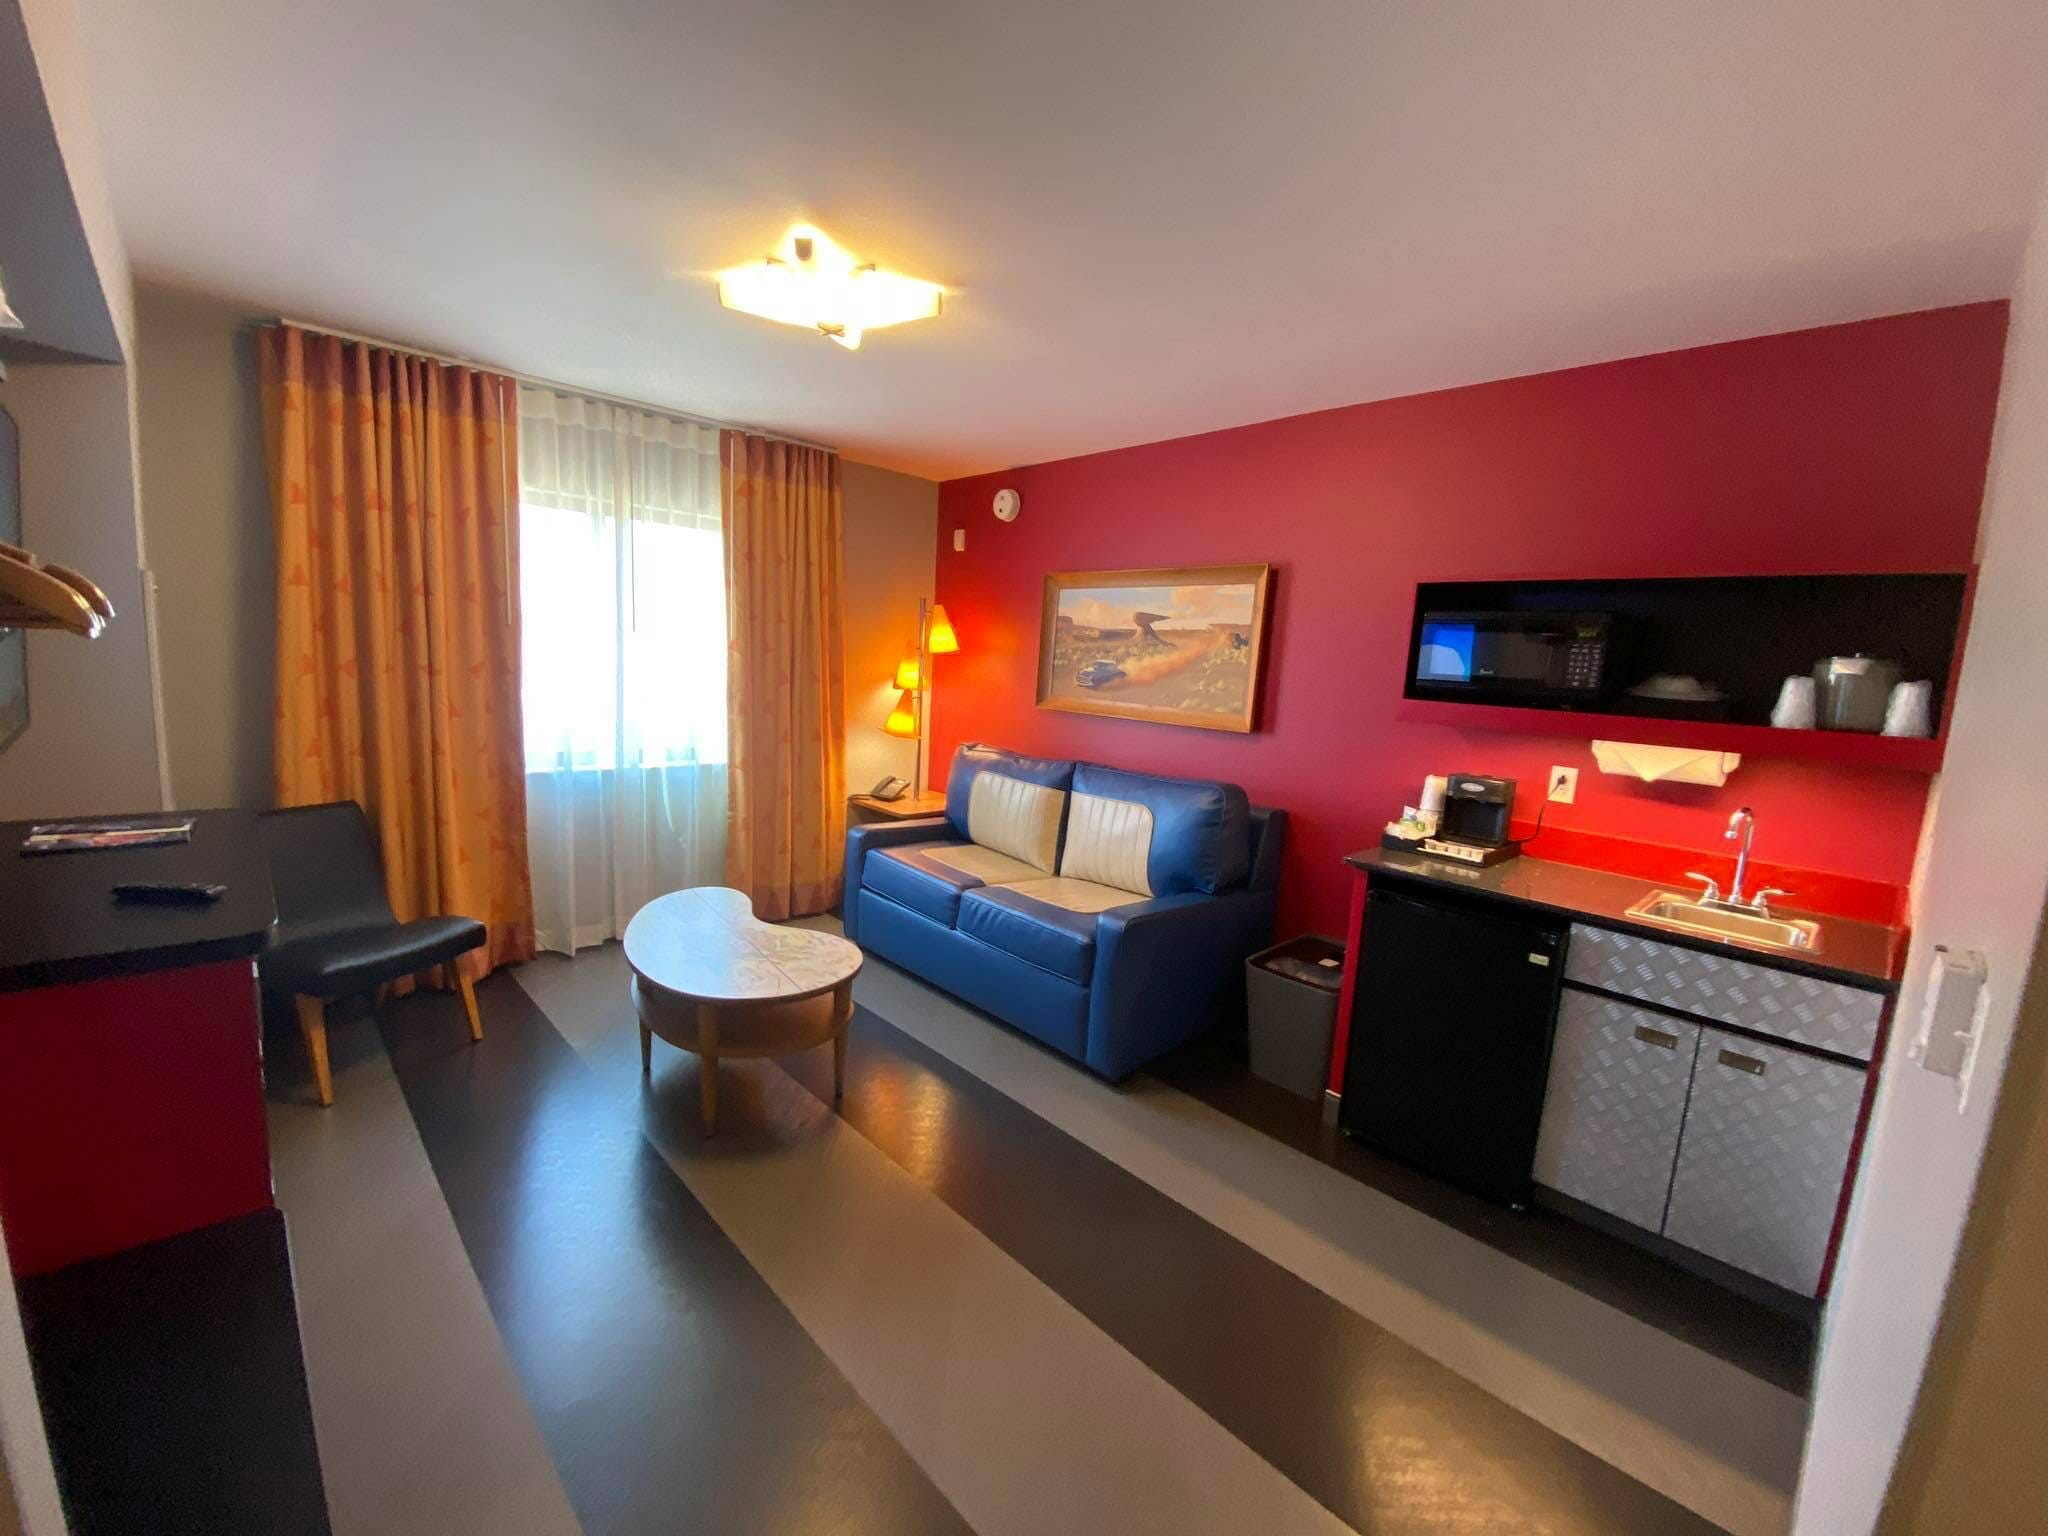 Refurbished Cars Suite at Disney's Art of Animation Resort